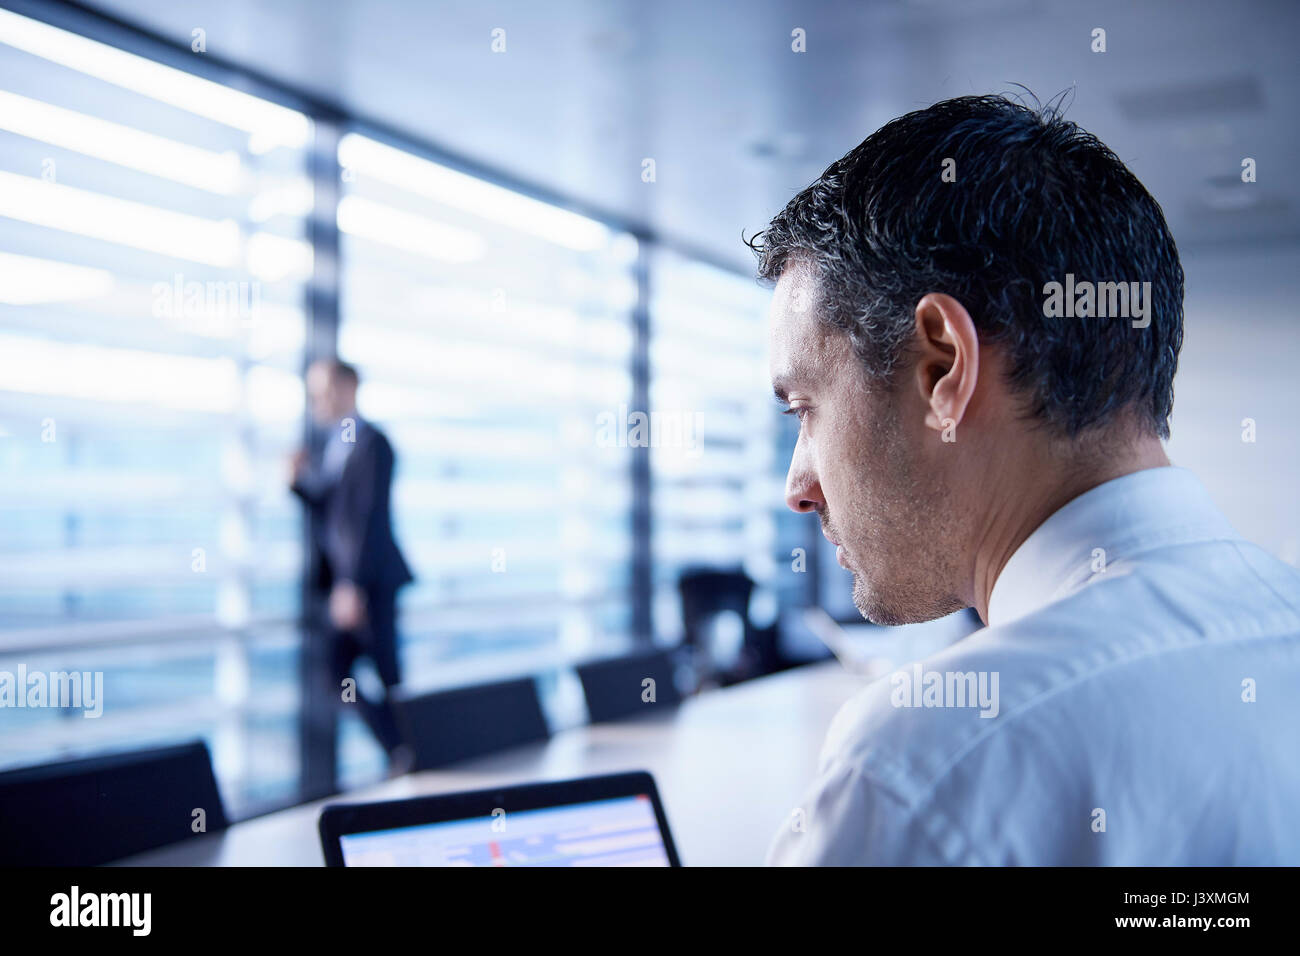 Businessman using laptop at boardroom table - Stock Image